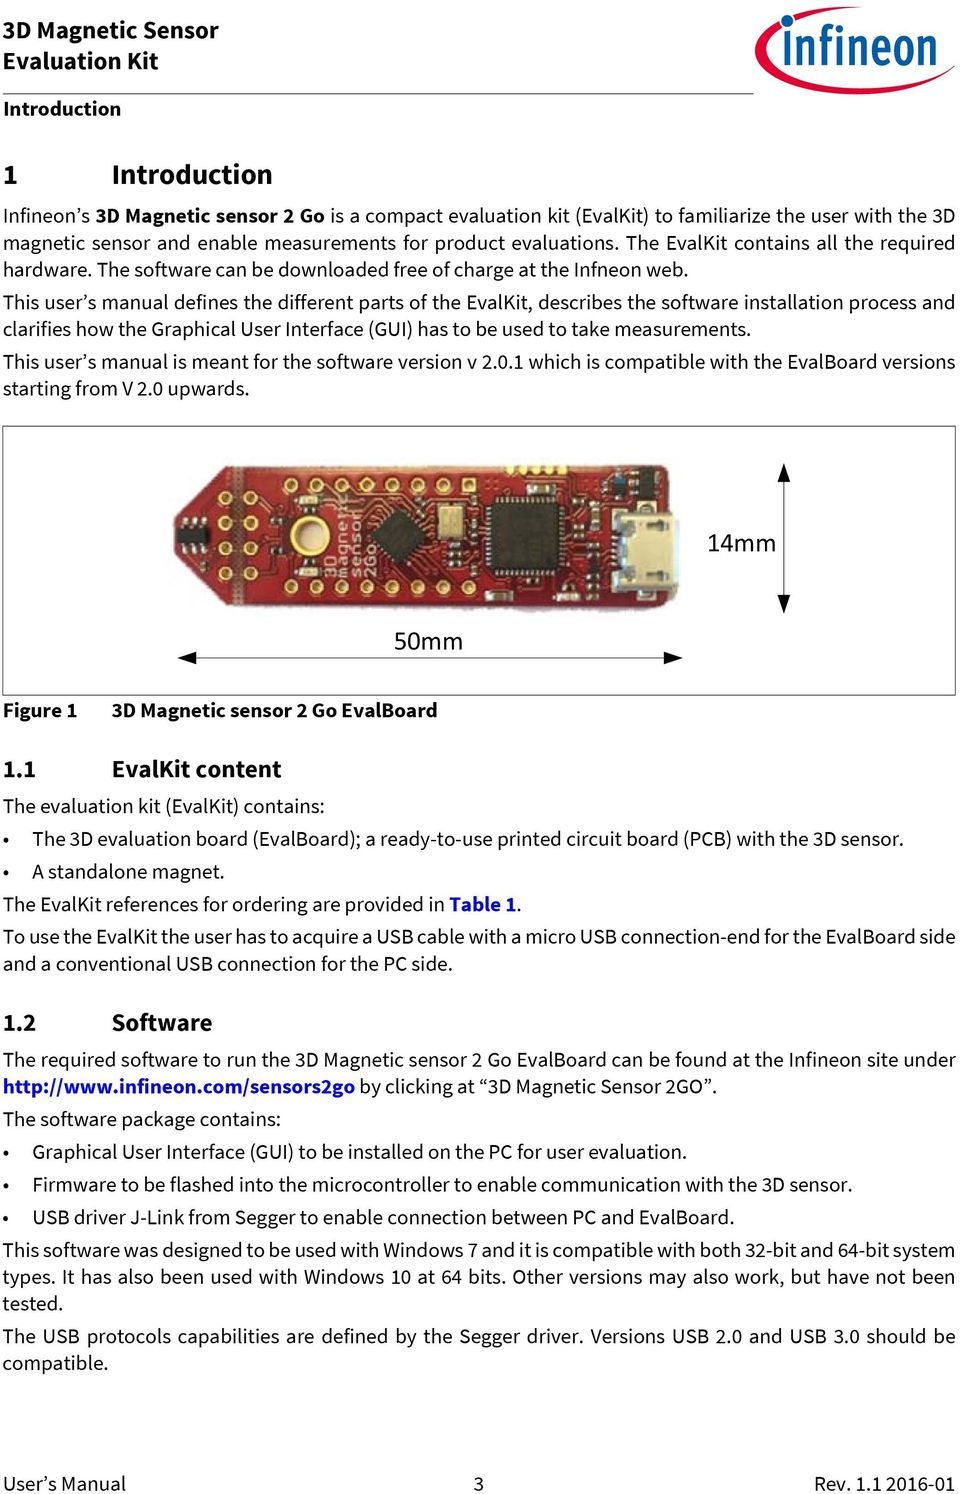 Evaluation Kit 3d Magnetic Sensor 2 Go User S Manual For Printed Circuit Board 01 This Defines The Different Parts Of Evalkit Describes Software Installation